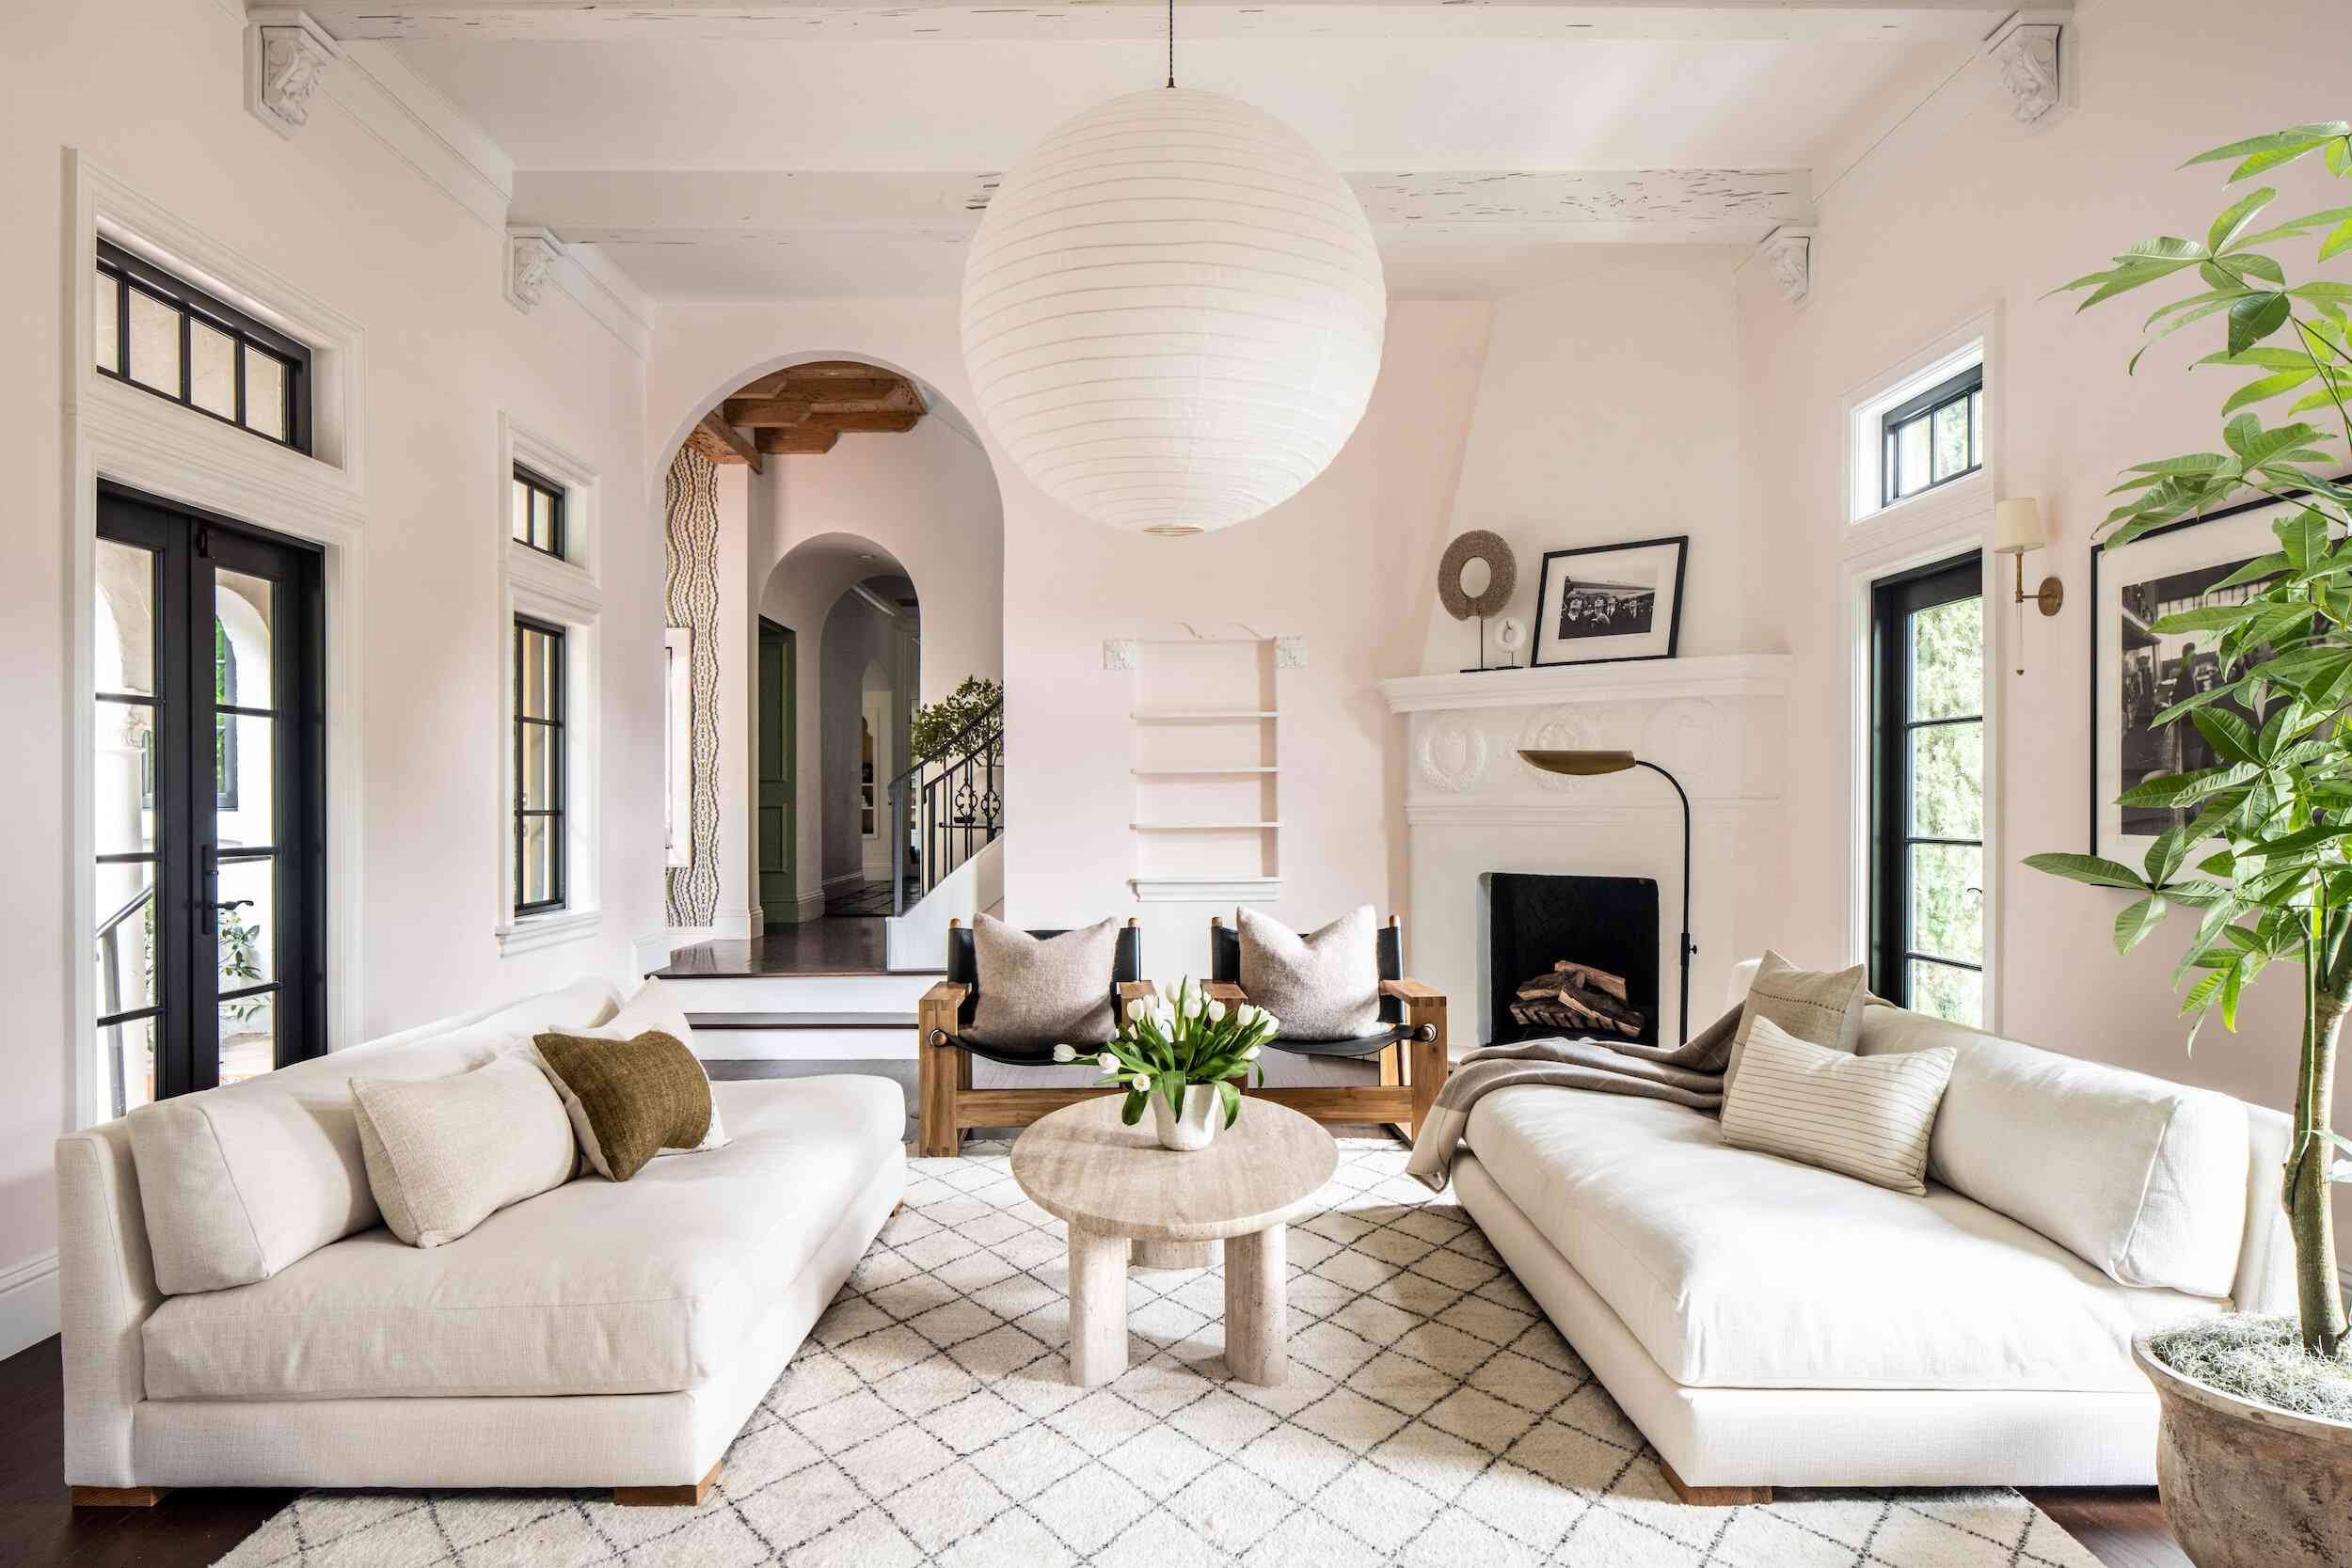 Living room with fireplace in the corner